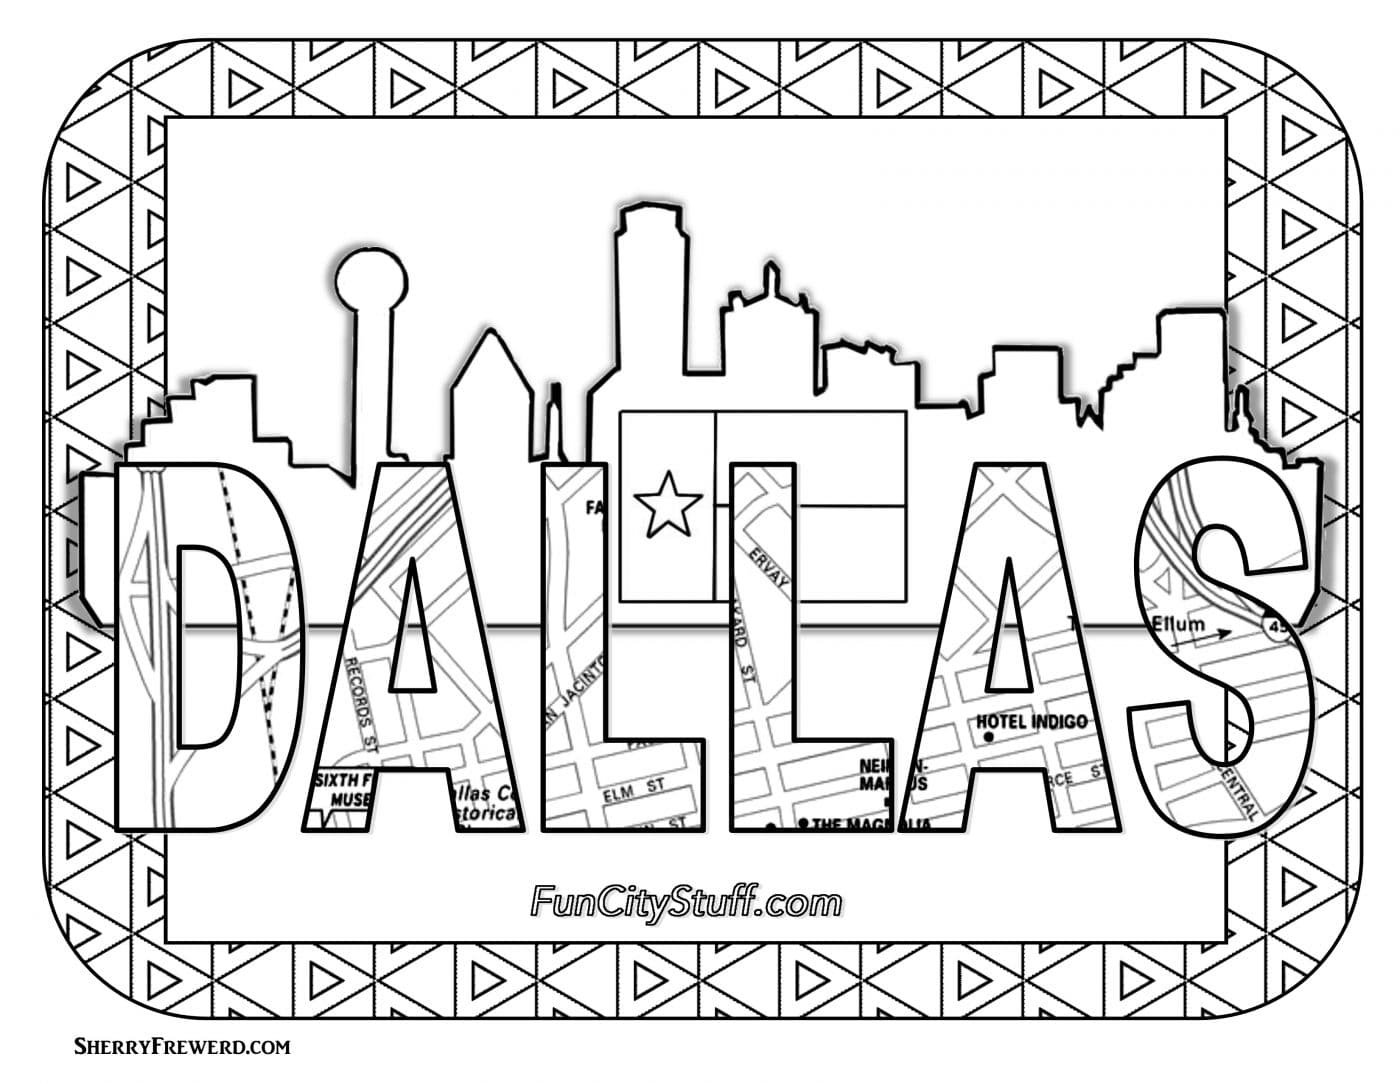 20 Skyline Coloring Page Easy Ideas And Designs